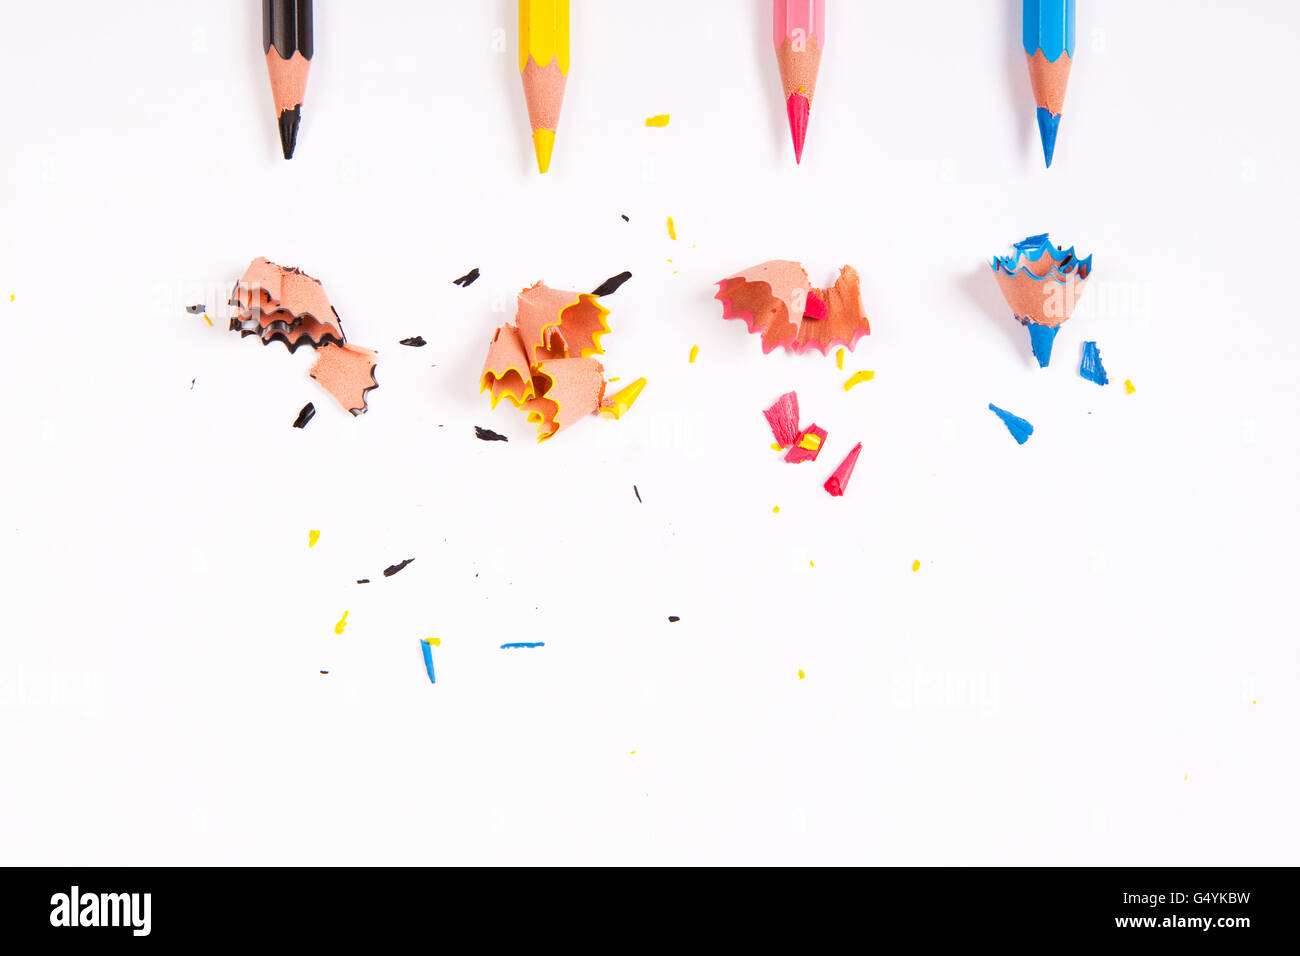 background with cmyk colored pencils - Stock Image